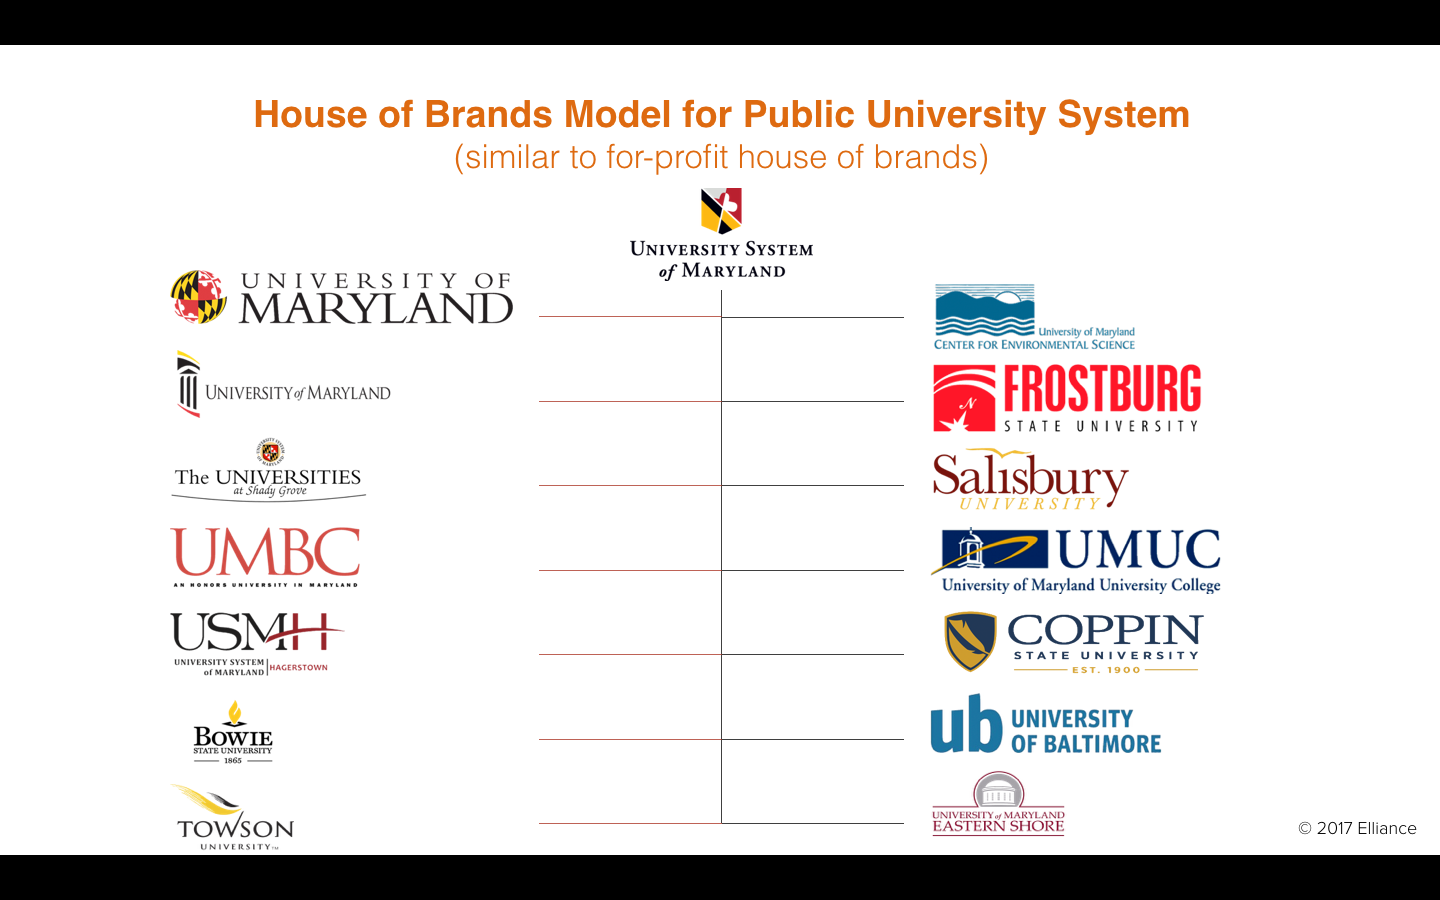 House of Brands Architecture for Public University System